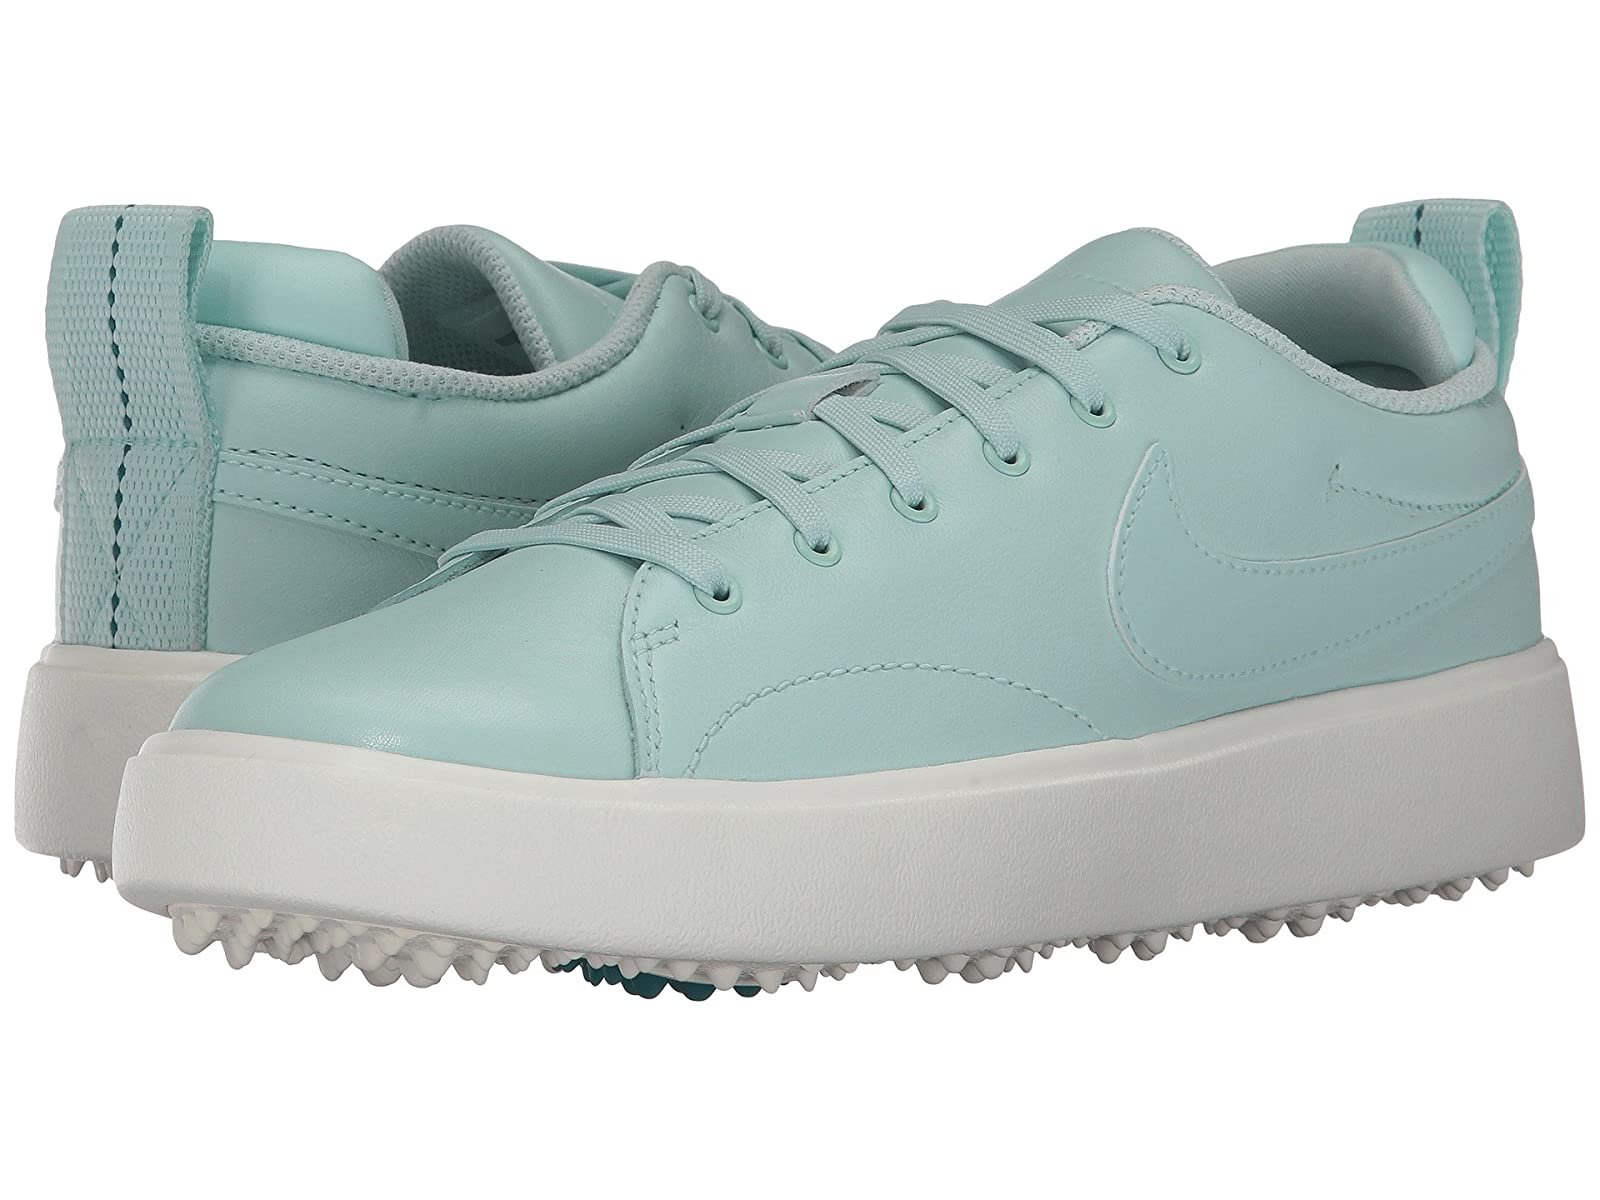 Nike Golf Course ClassicCheap and distinctive eye-catching shoes